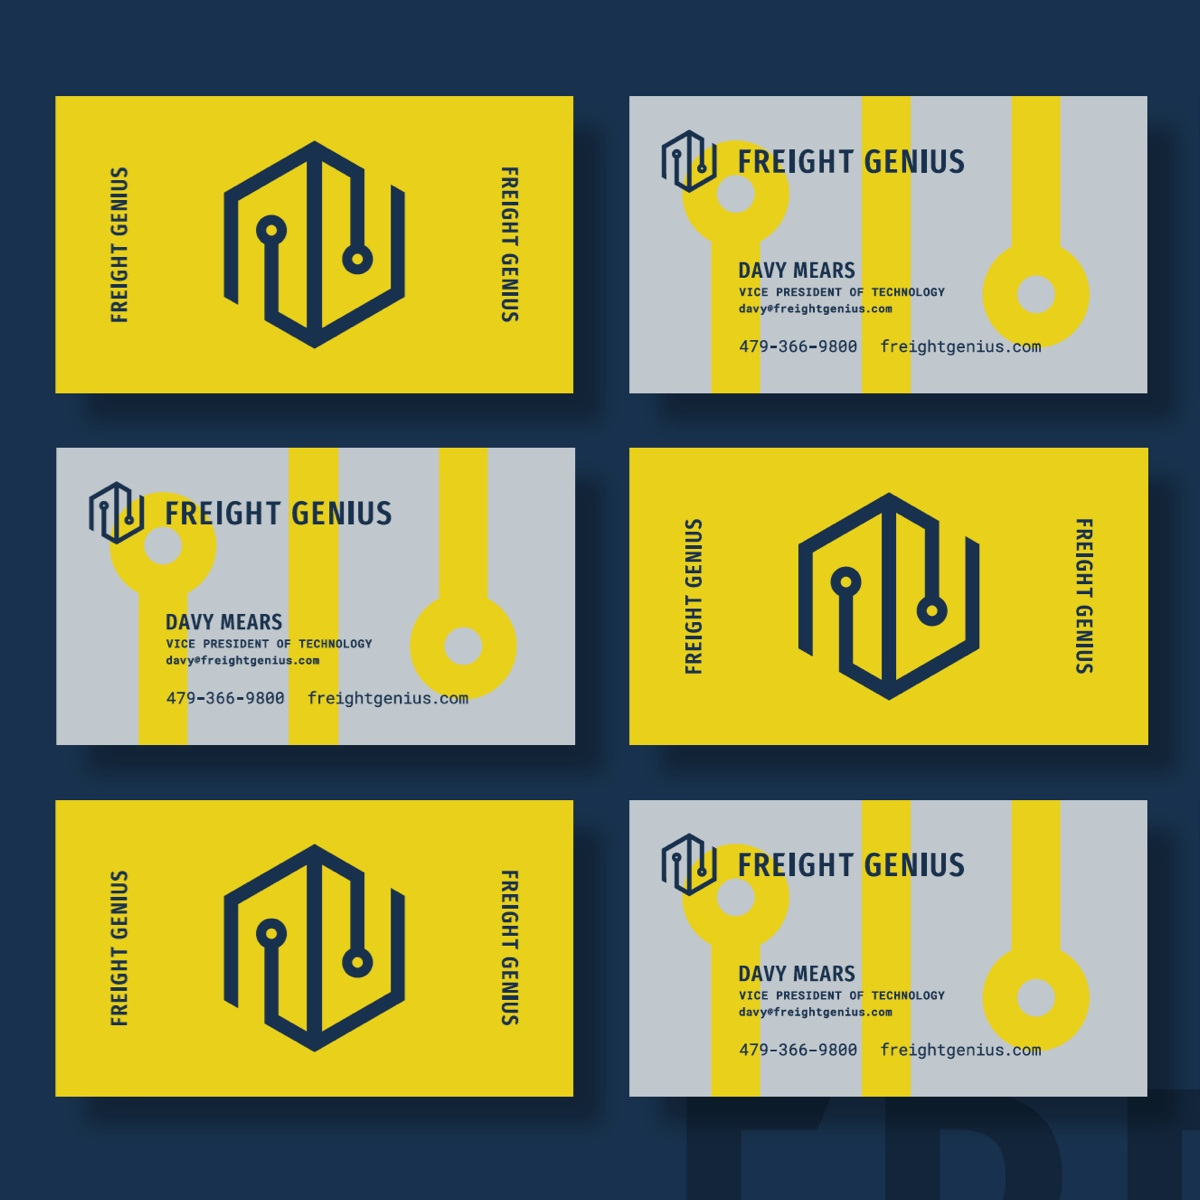 freight genius business cards